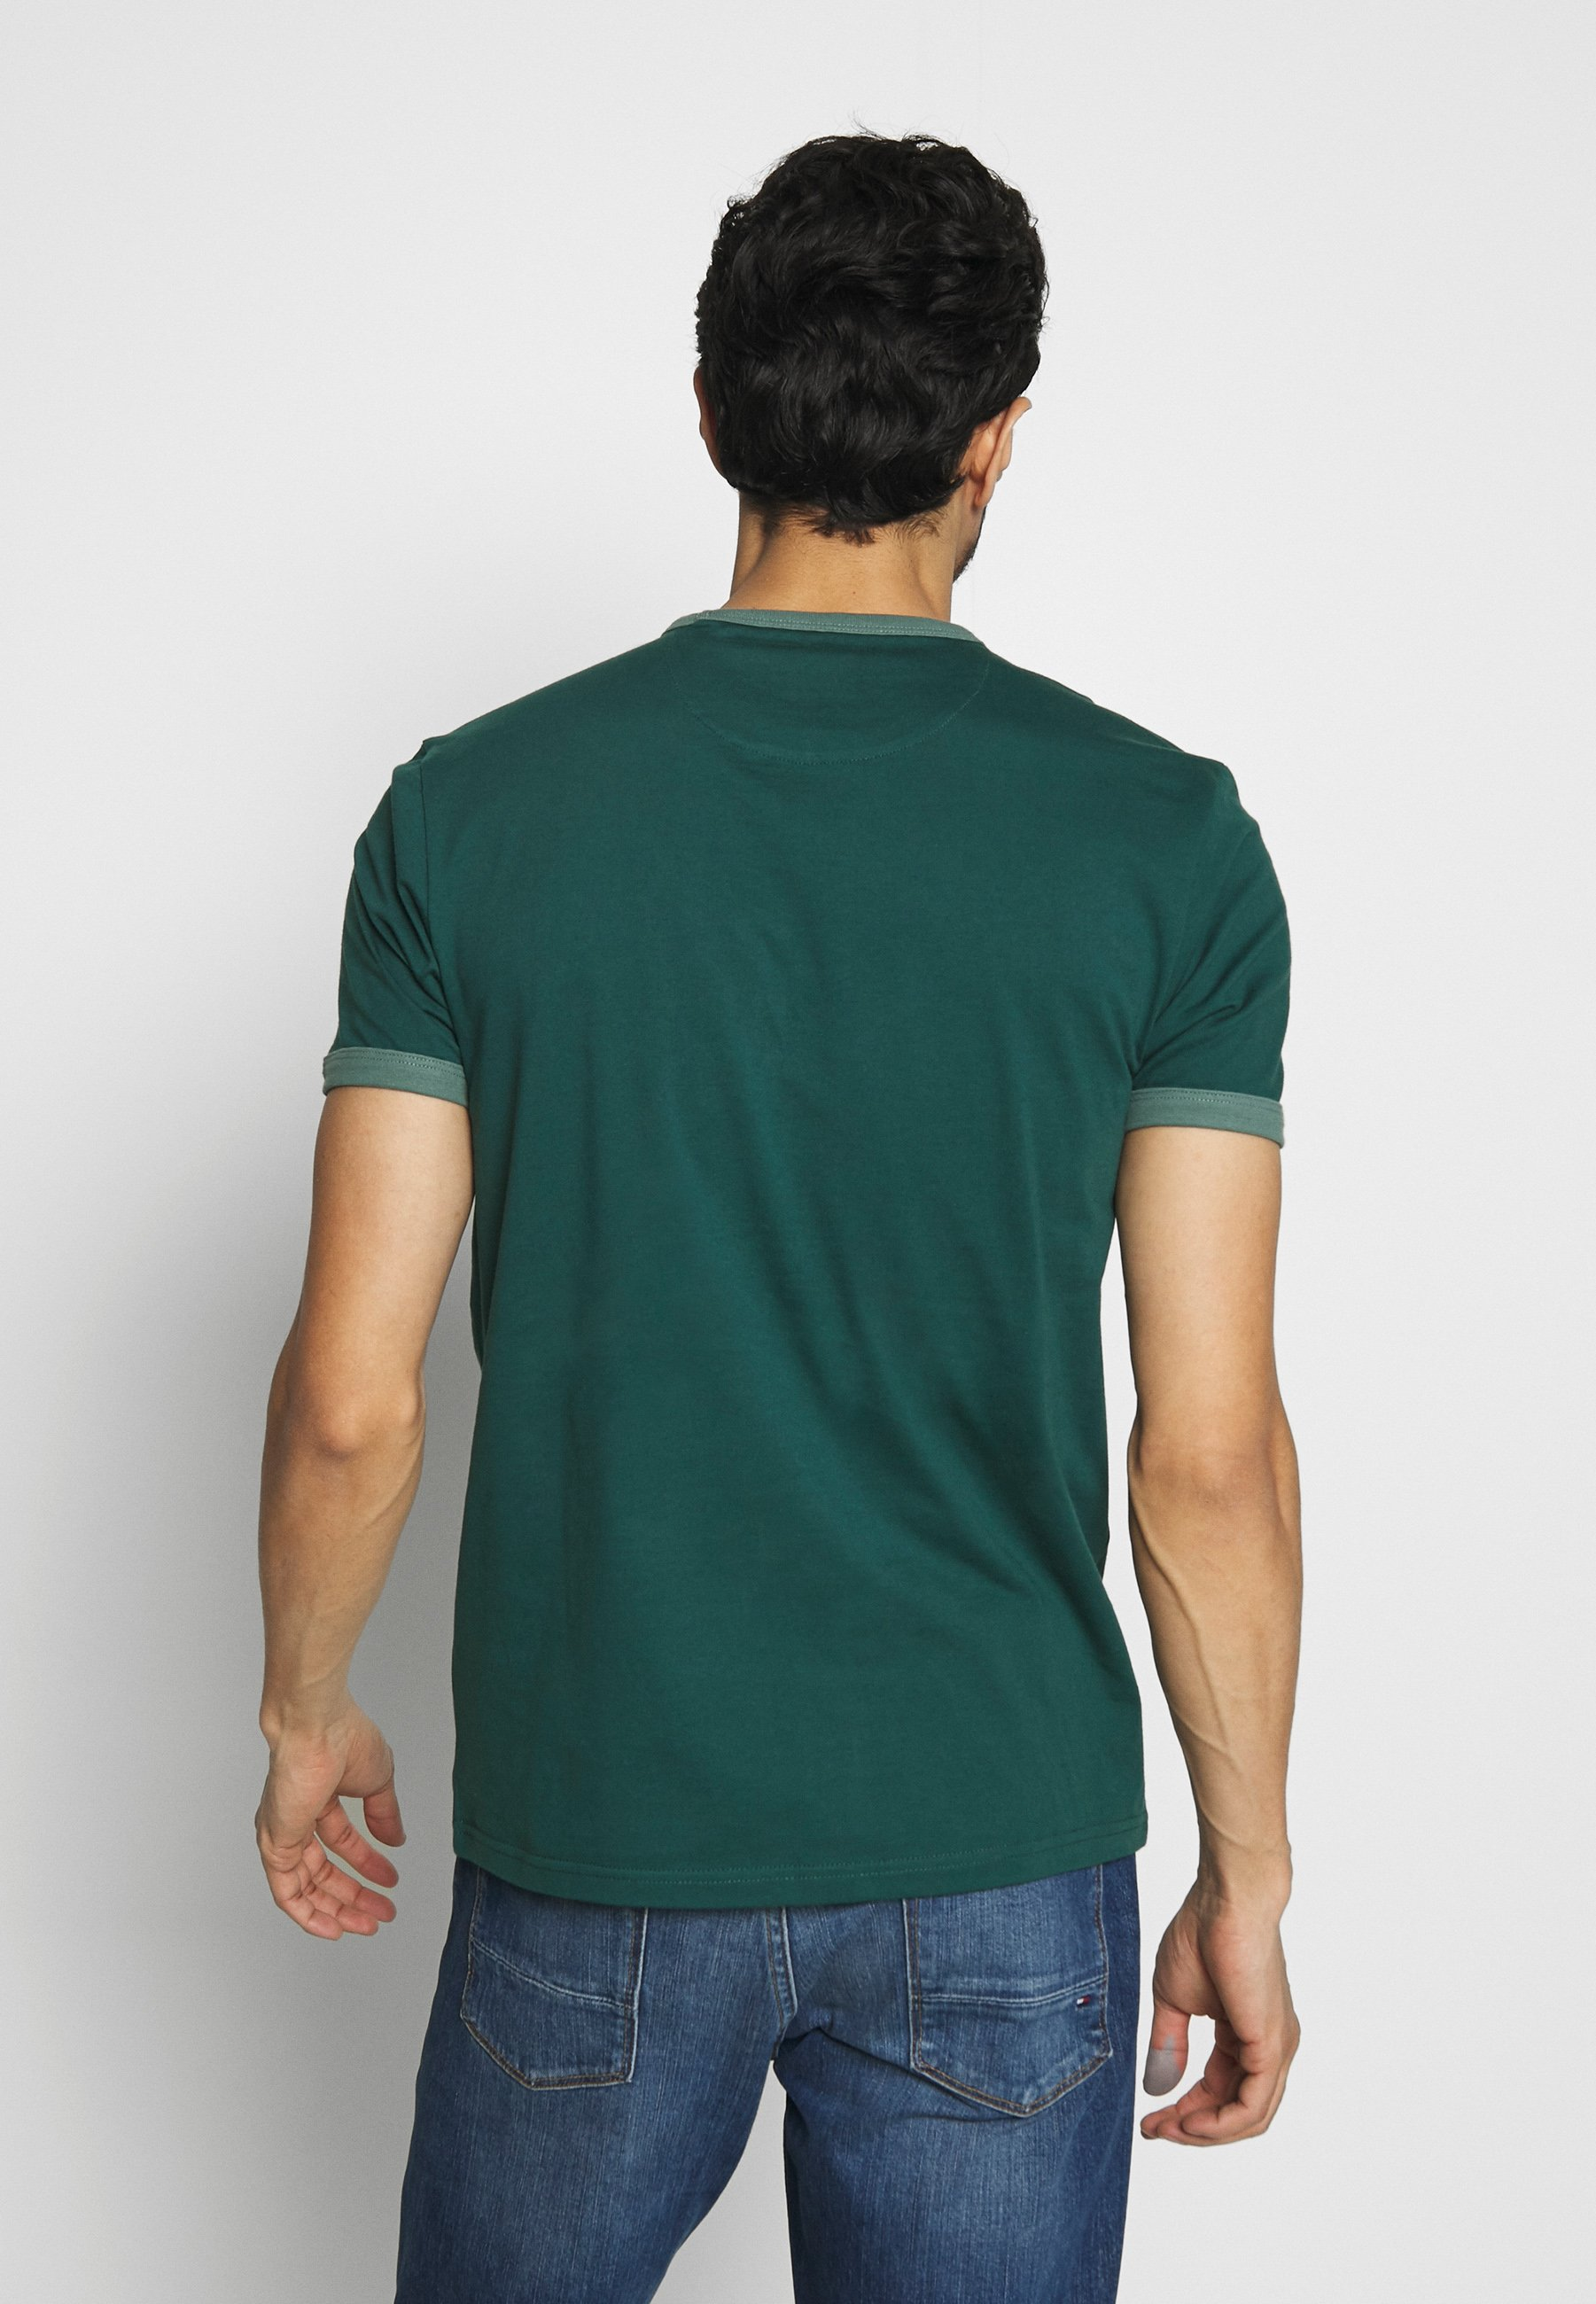 Farah Groves Ringer Tee - T-shirt Bas Bright Emerald